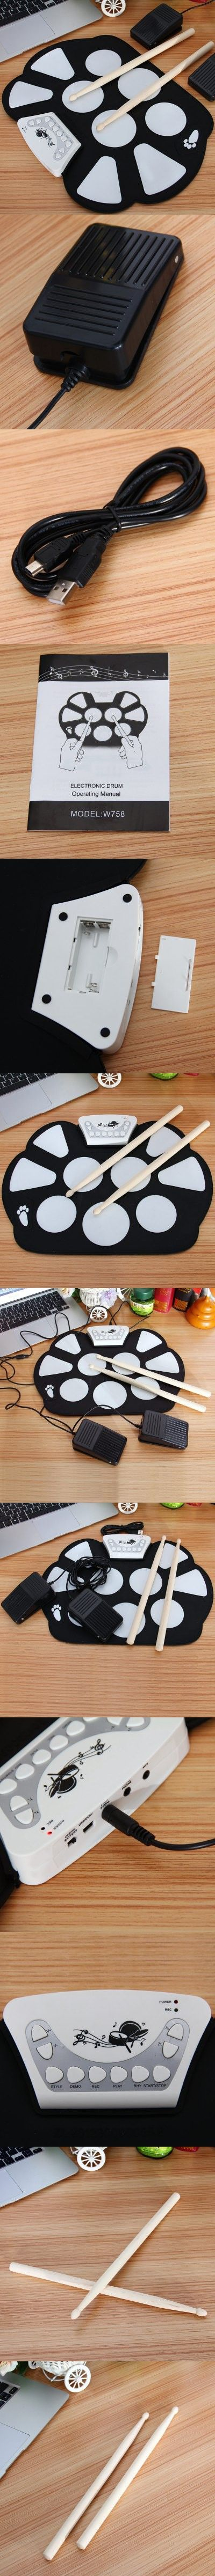 Musical Instruments > Other Musical Instruments W758M USB Drum Kit PC Desktop Electronic Drum Pad with 2 Sticks Foot Pedals